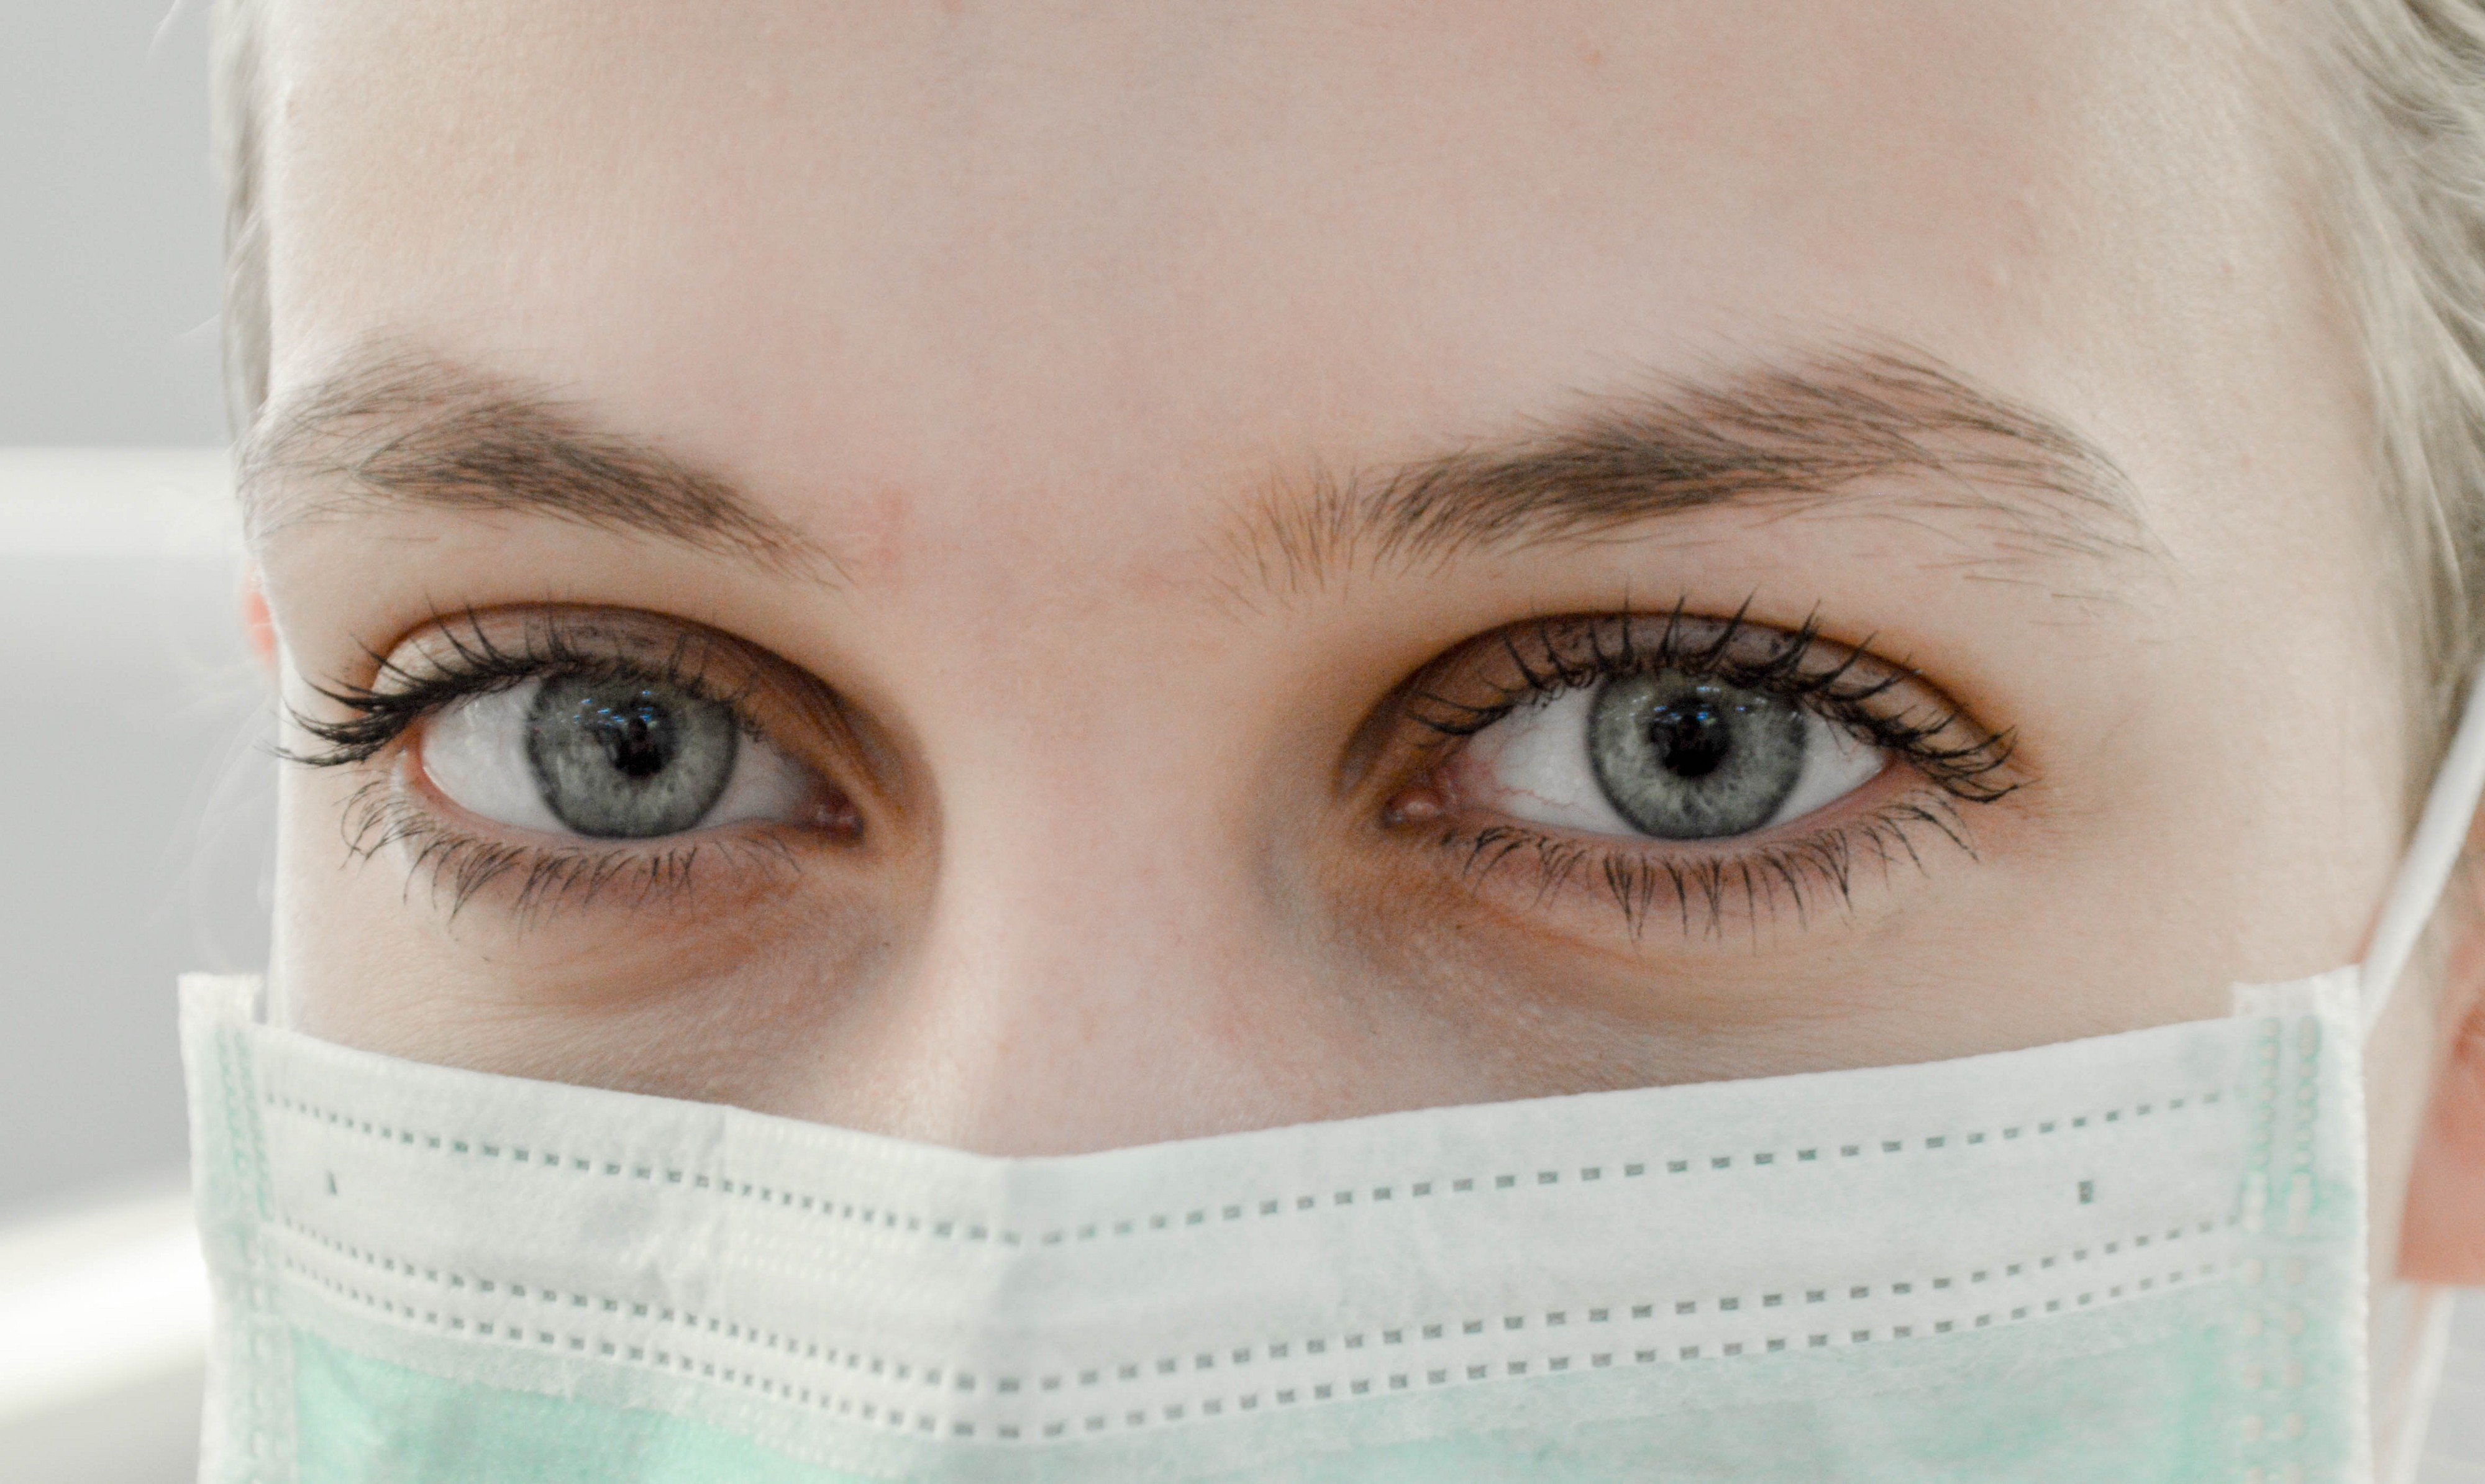 A zoomed in photo of a woman with blue eyes wearing a protective face mask